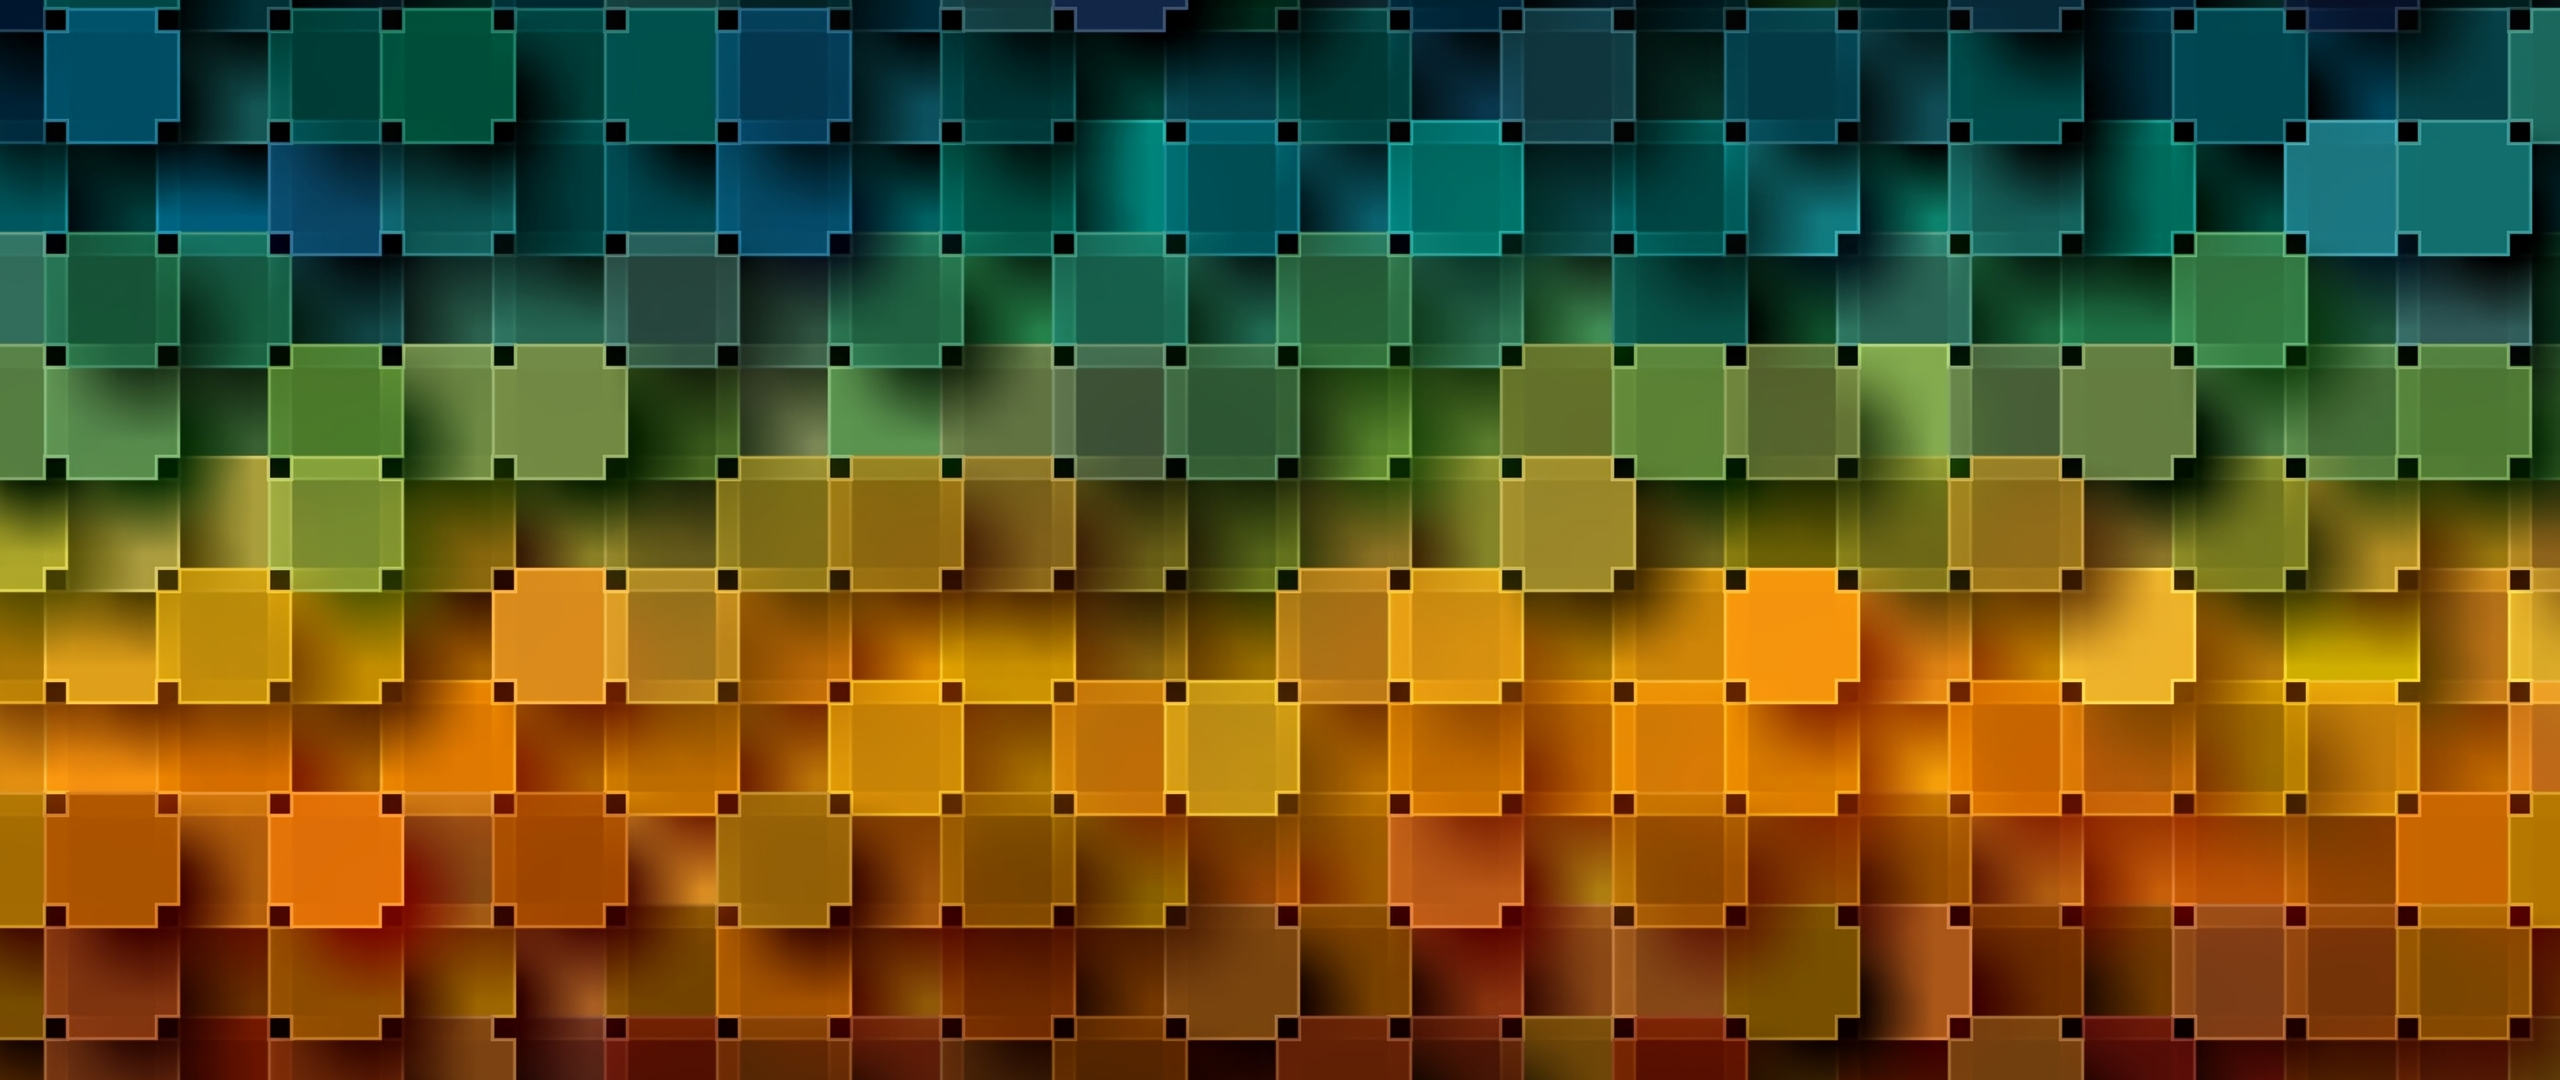 grid-pattern-abstract-digital-art-4k-ag.jpg